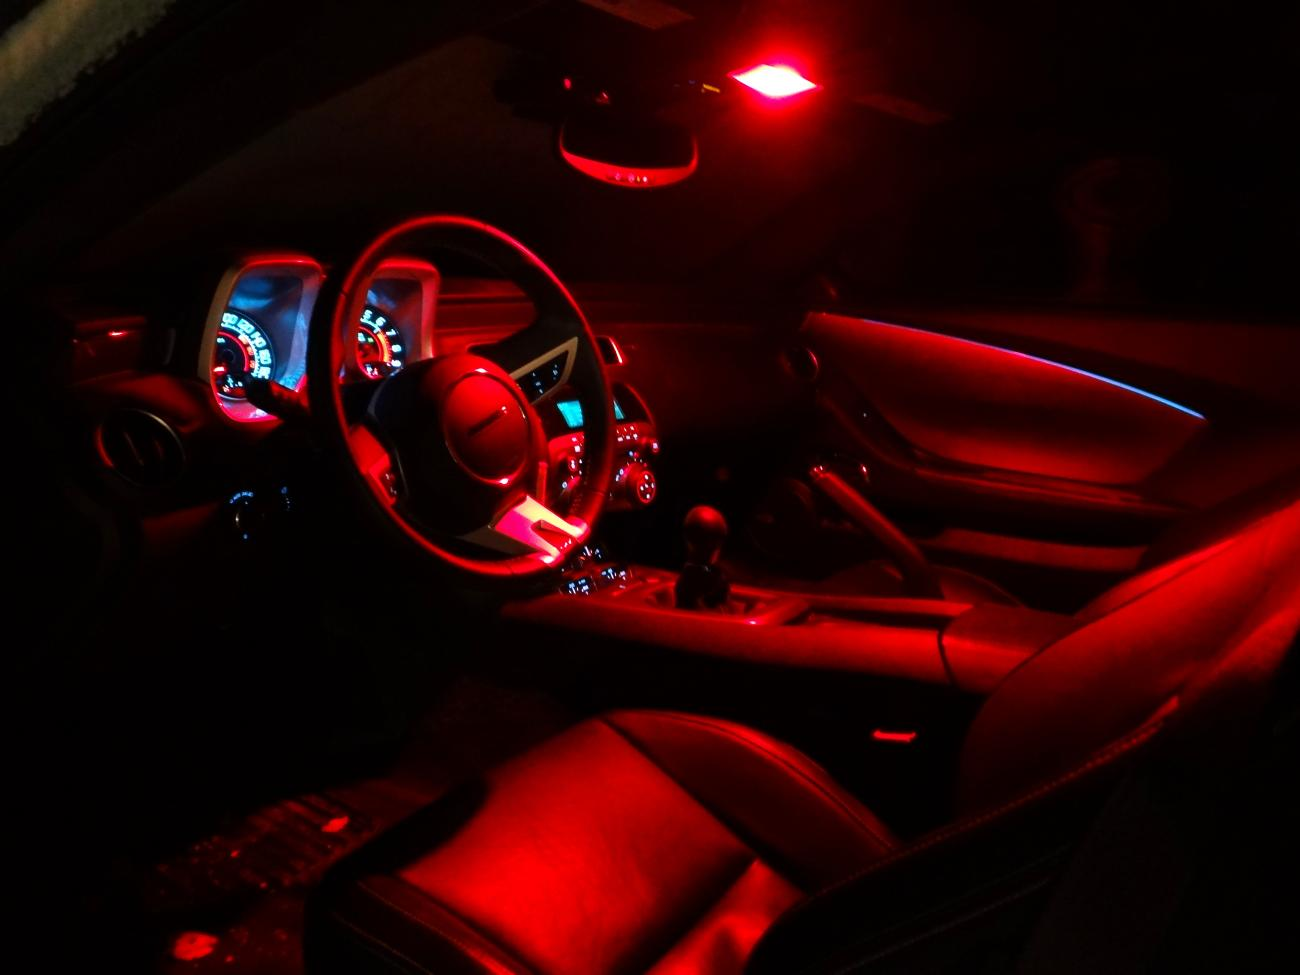 new led interior map light pods free shipping nissan 370z forum. Black Bedroom Furniture Sets. Home Design Ideas